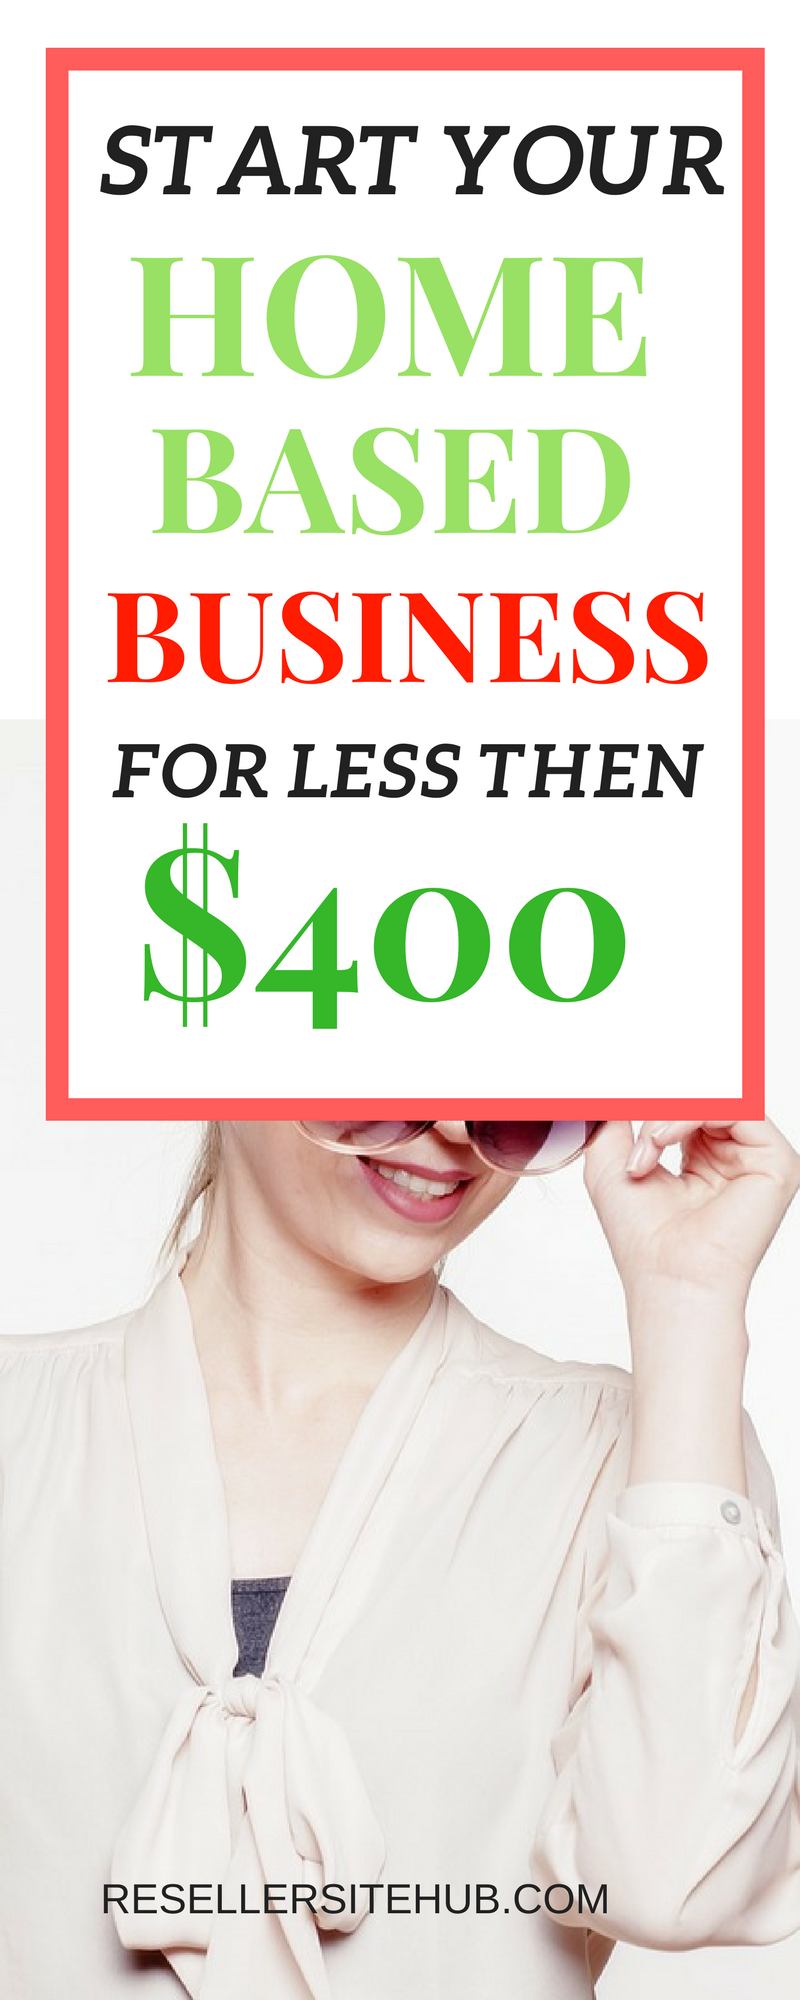 Home Based Business Ideas You Can Start For Under $400! | Business